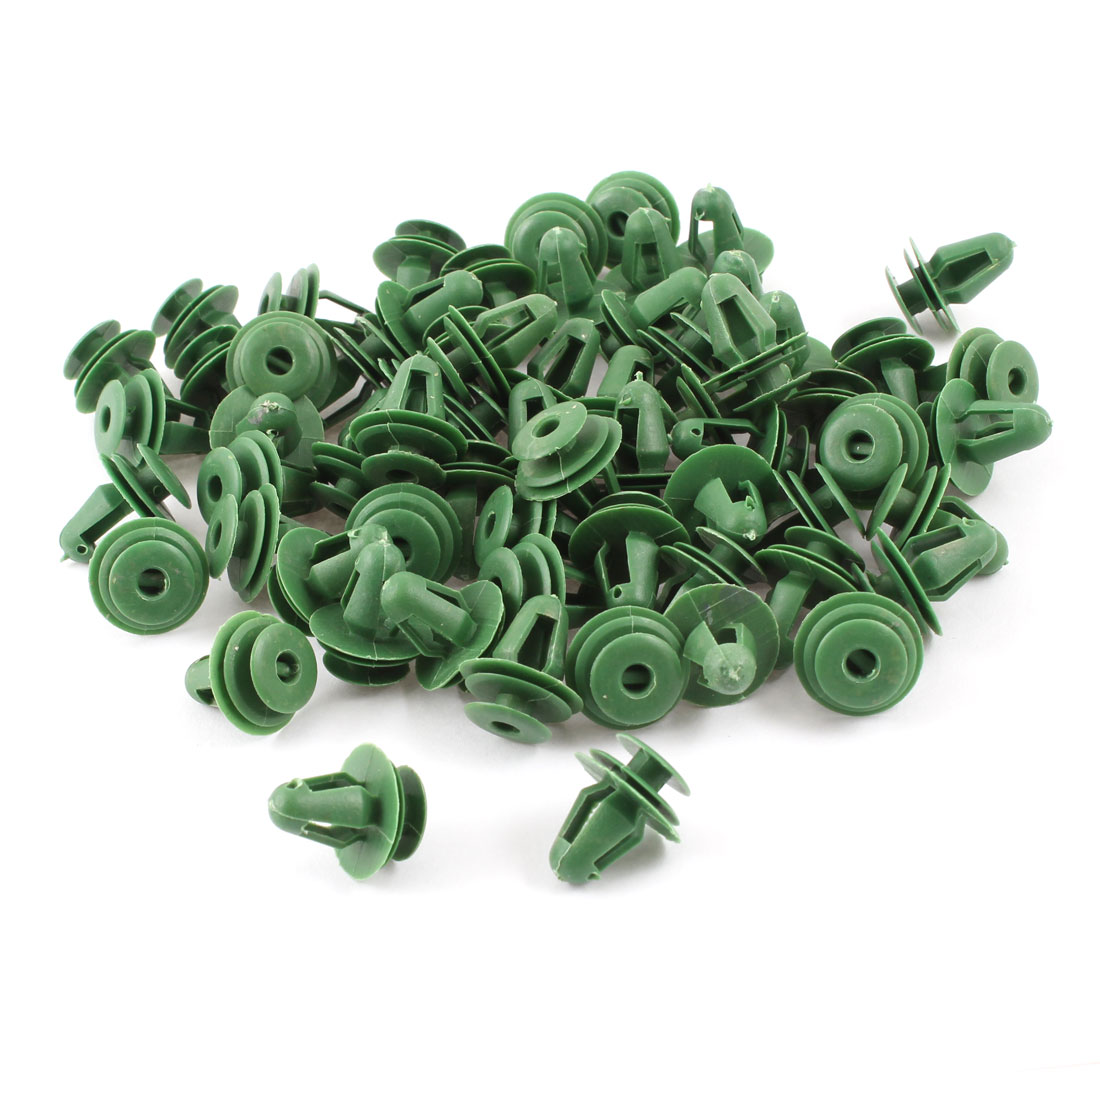 100 Pcs Green Plastic Rivets Retainer Clip 18x14x10mm for Car Bumper Fender